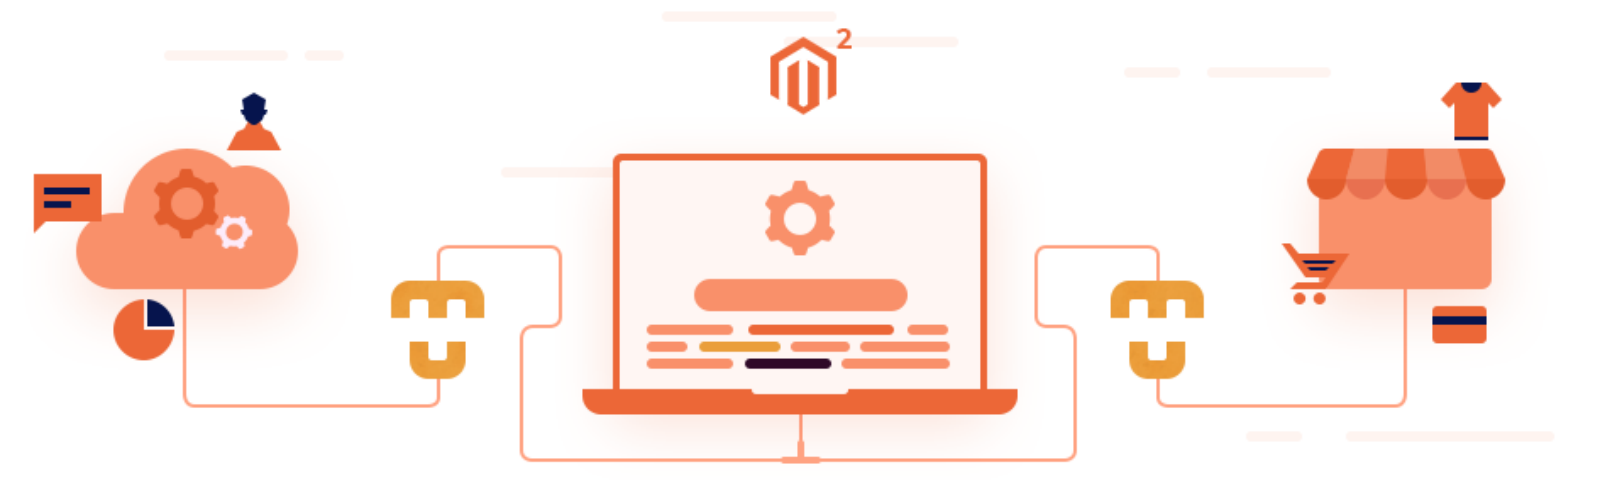 Process of integration of Marketing cloud with Magento2